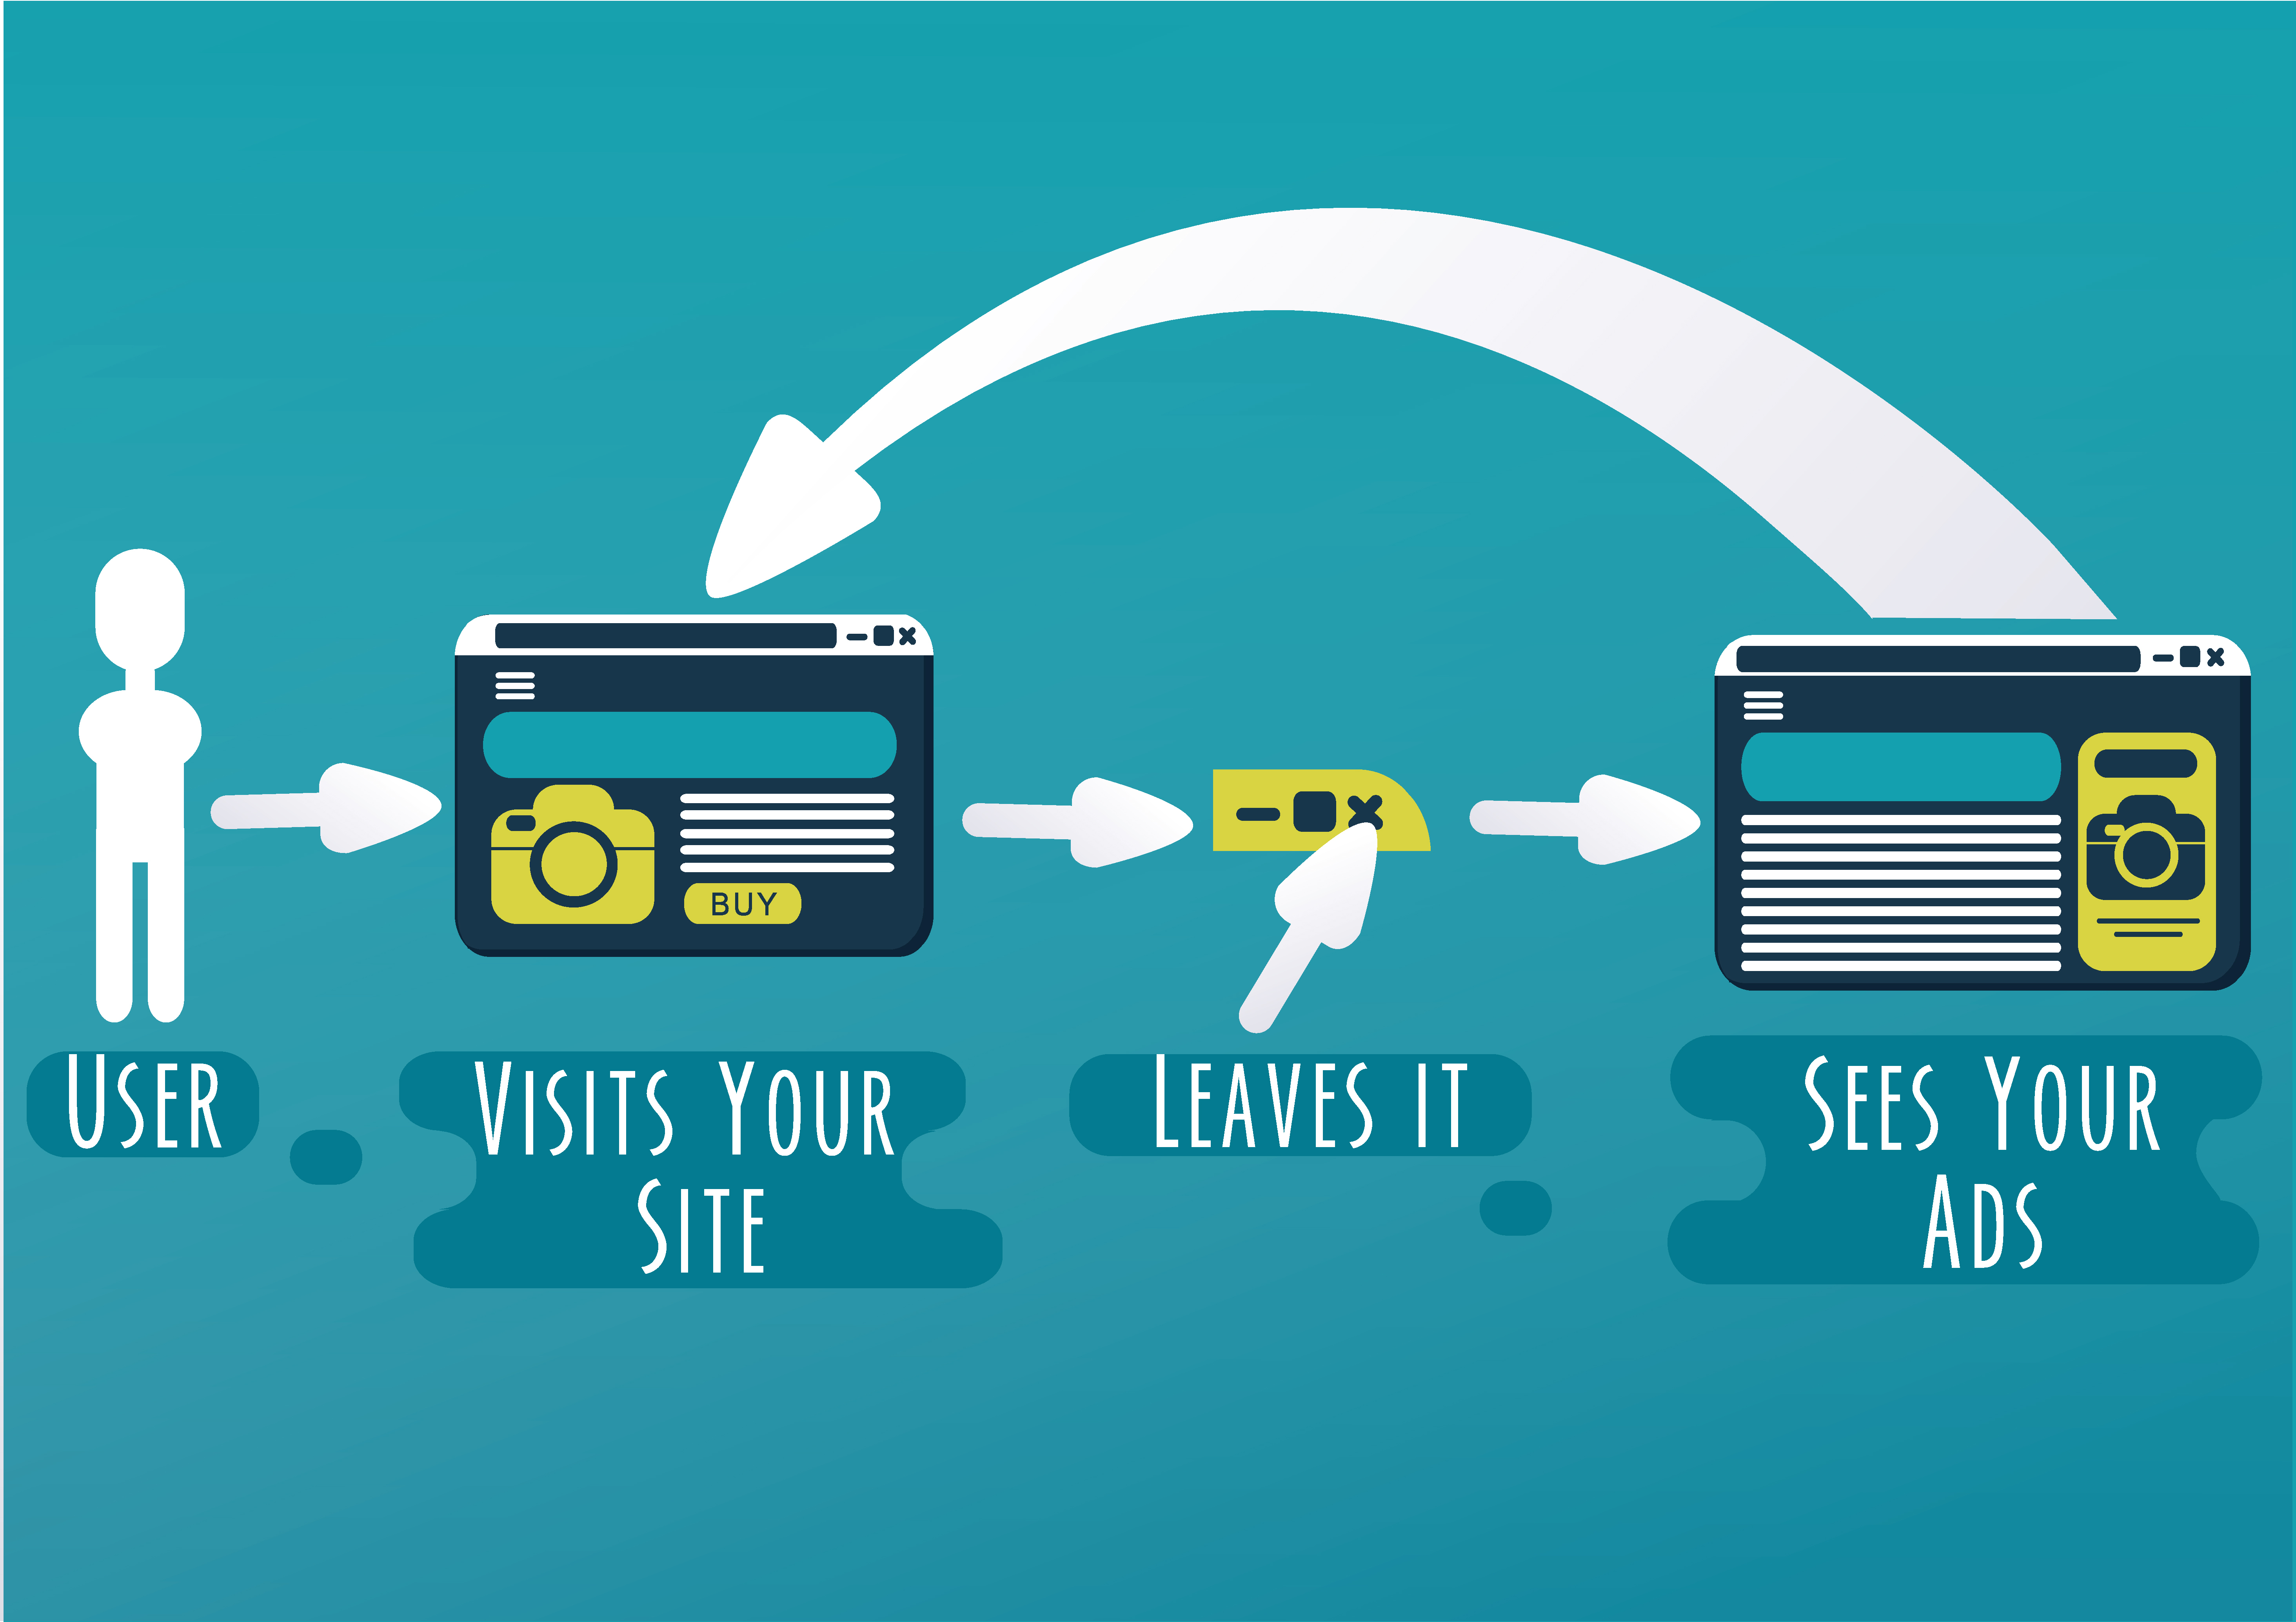 image showing a diagram explaining how retargeting works